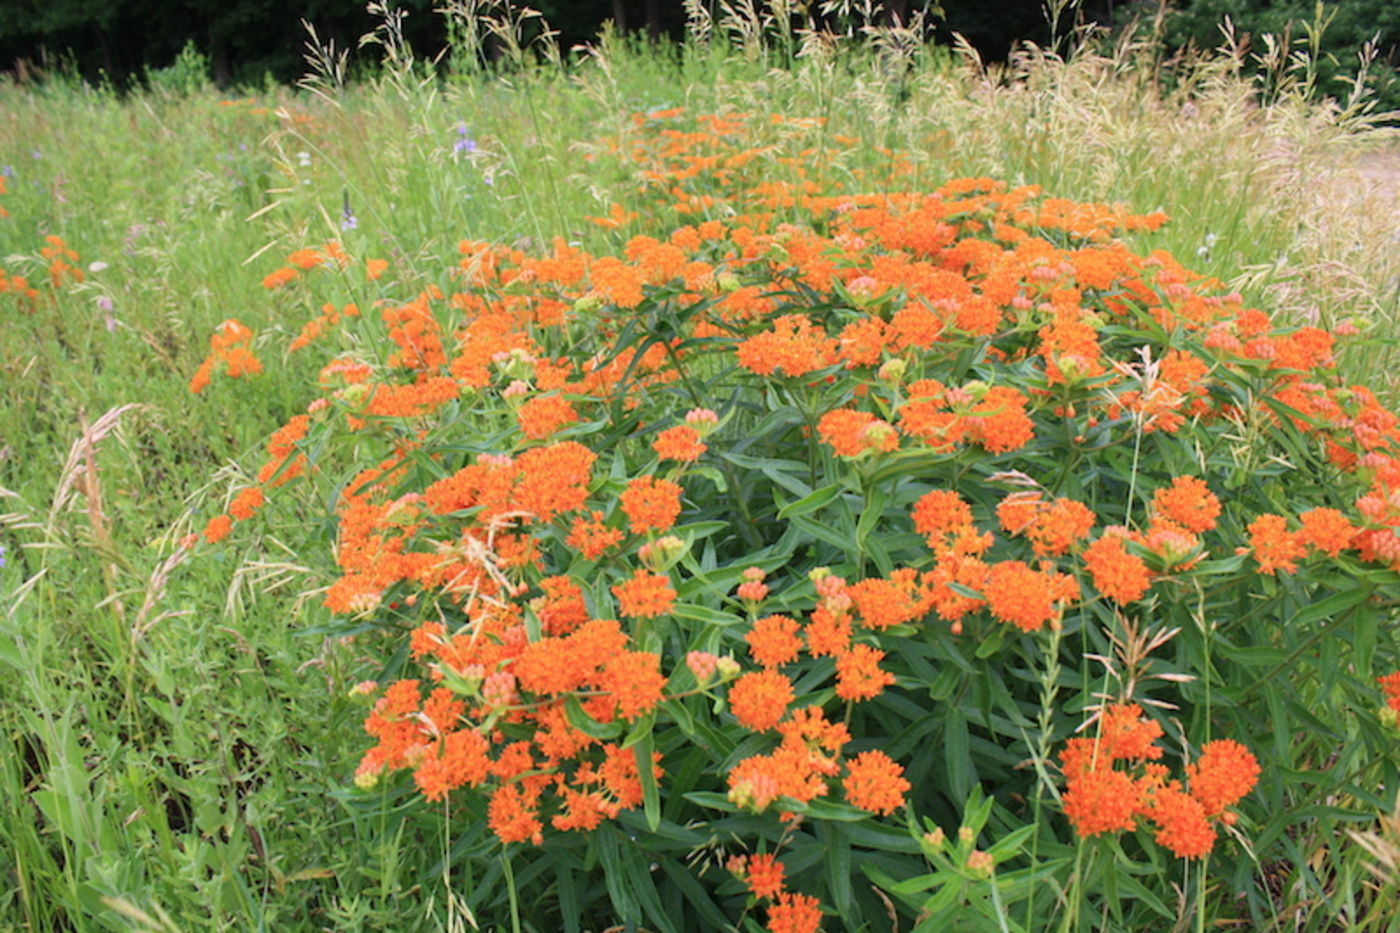 A large cluster of plants with tall stems topped by small orange flowers